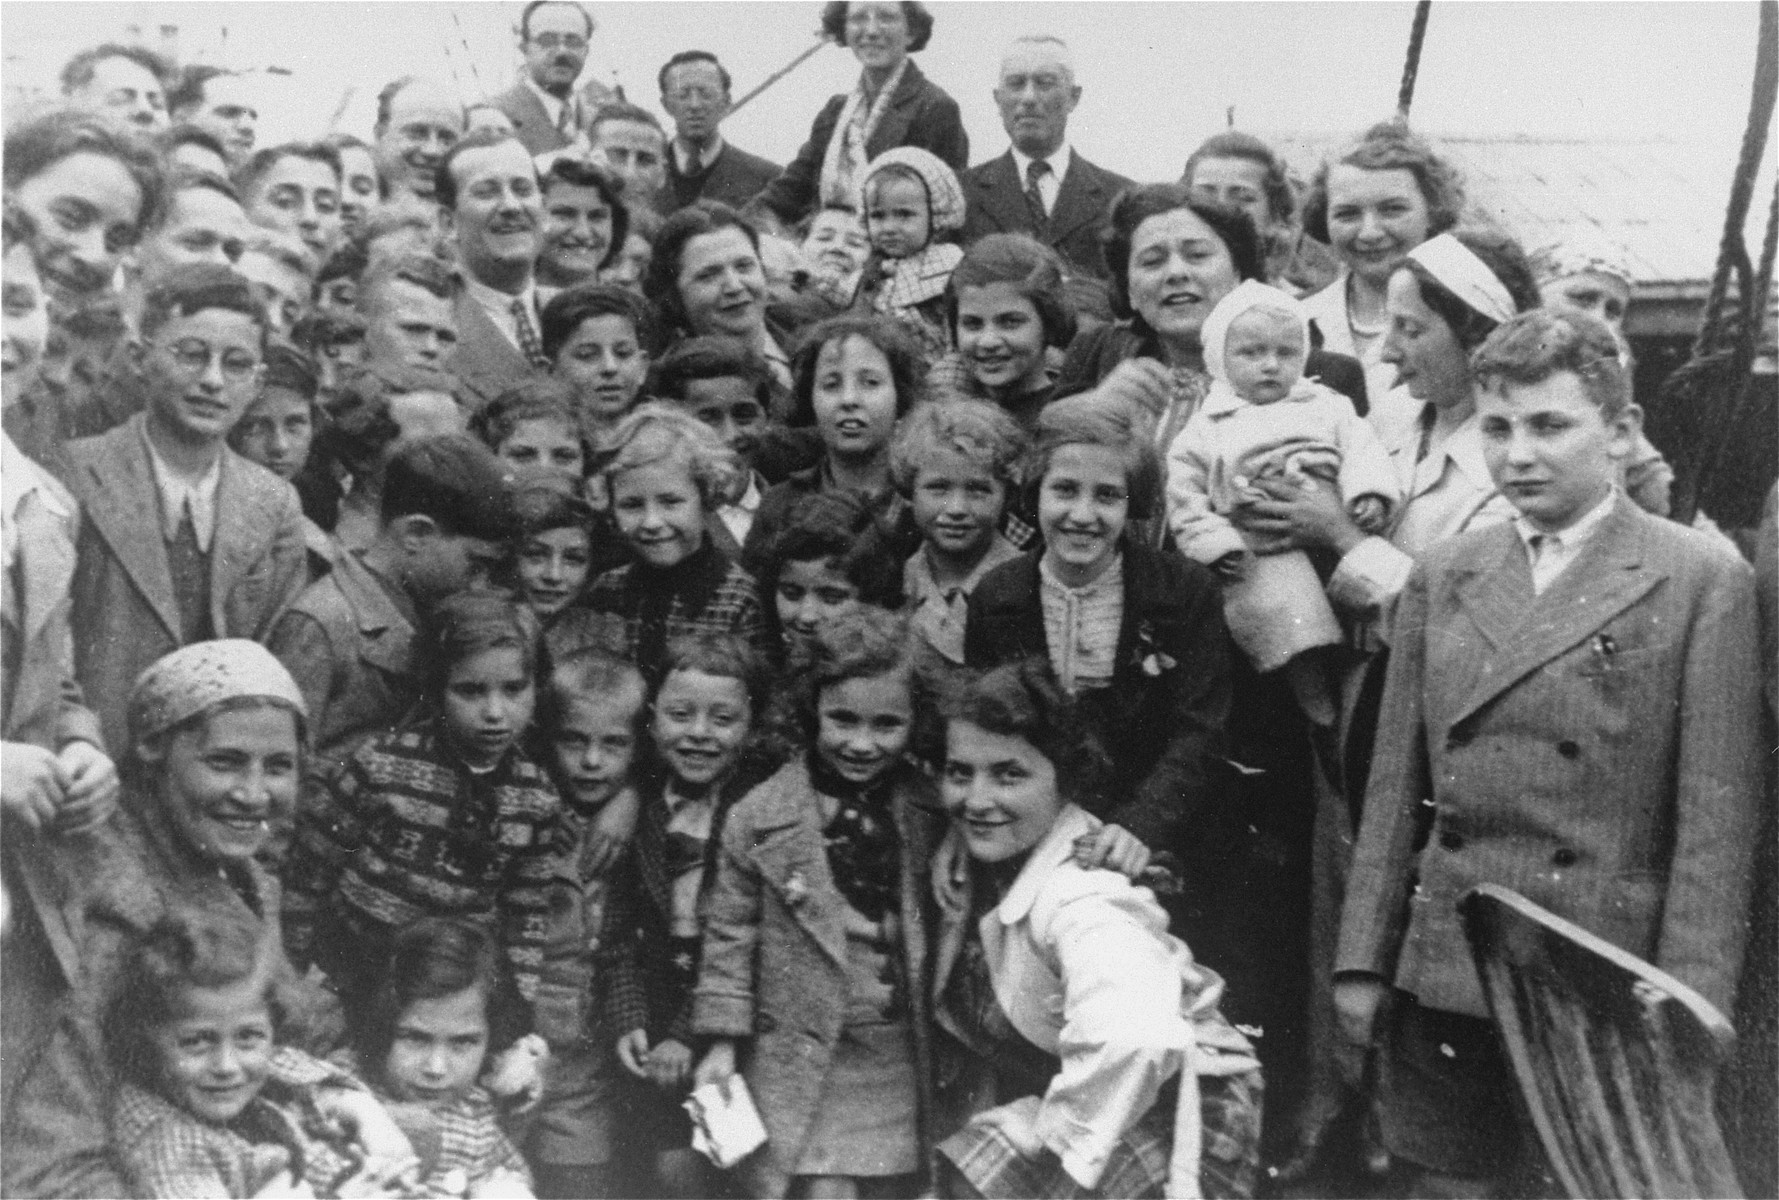 Passengers aboard the MS St. Louis.  Liane Reif, is standing at center, foreground.  Her brother Fred is standing first from the right.  Among the other passengers are Liesl Loeb, Herbert Karliner, Troper, Hans Fischer, Lisl Mandel, Henry Gallan, Judl Gunther and Oskar Blechner.